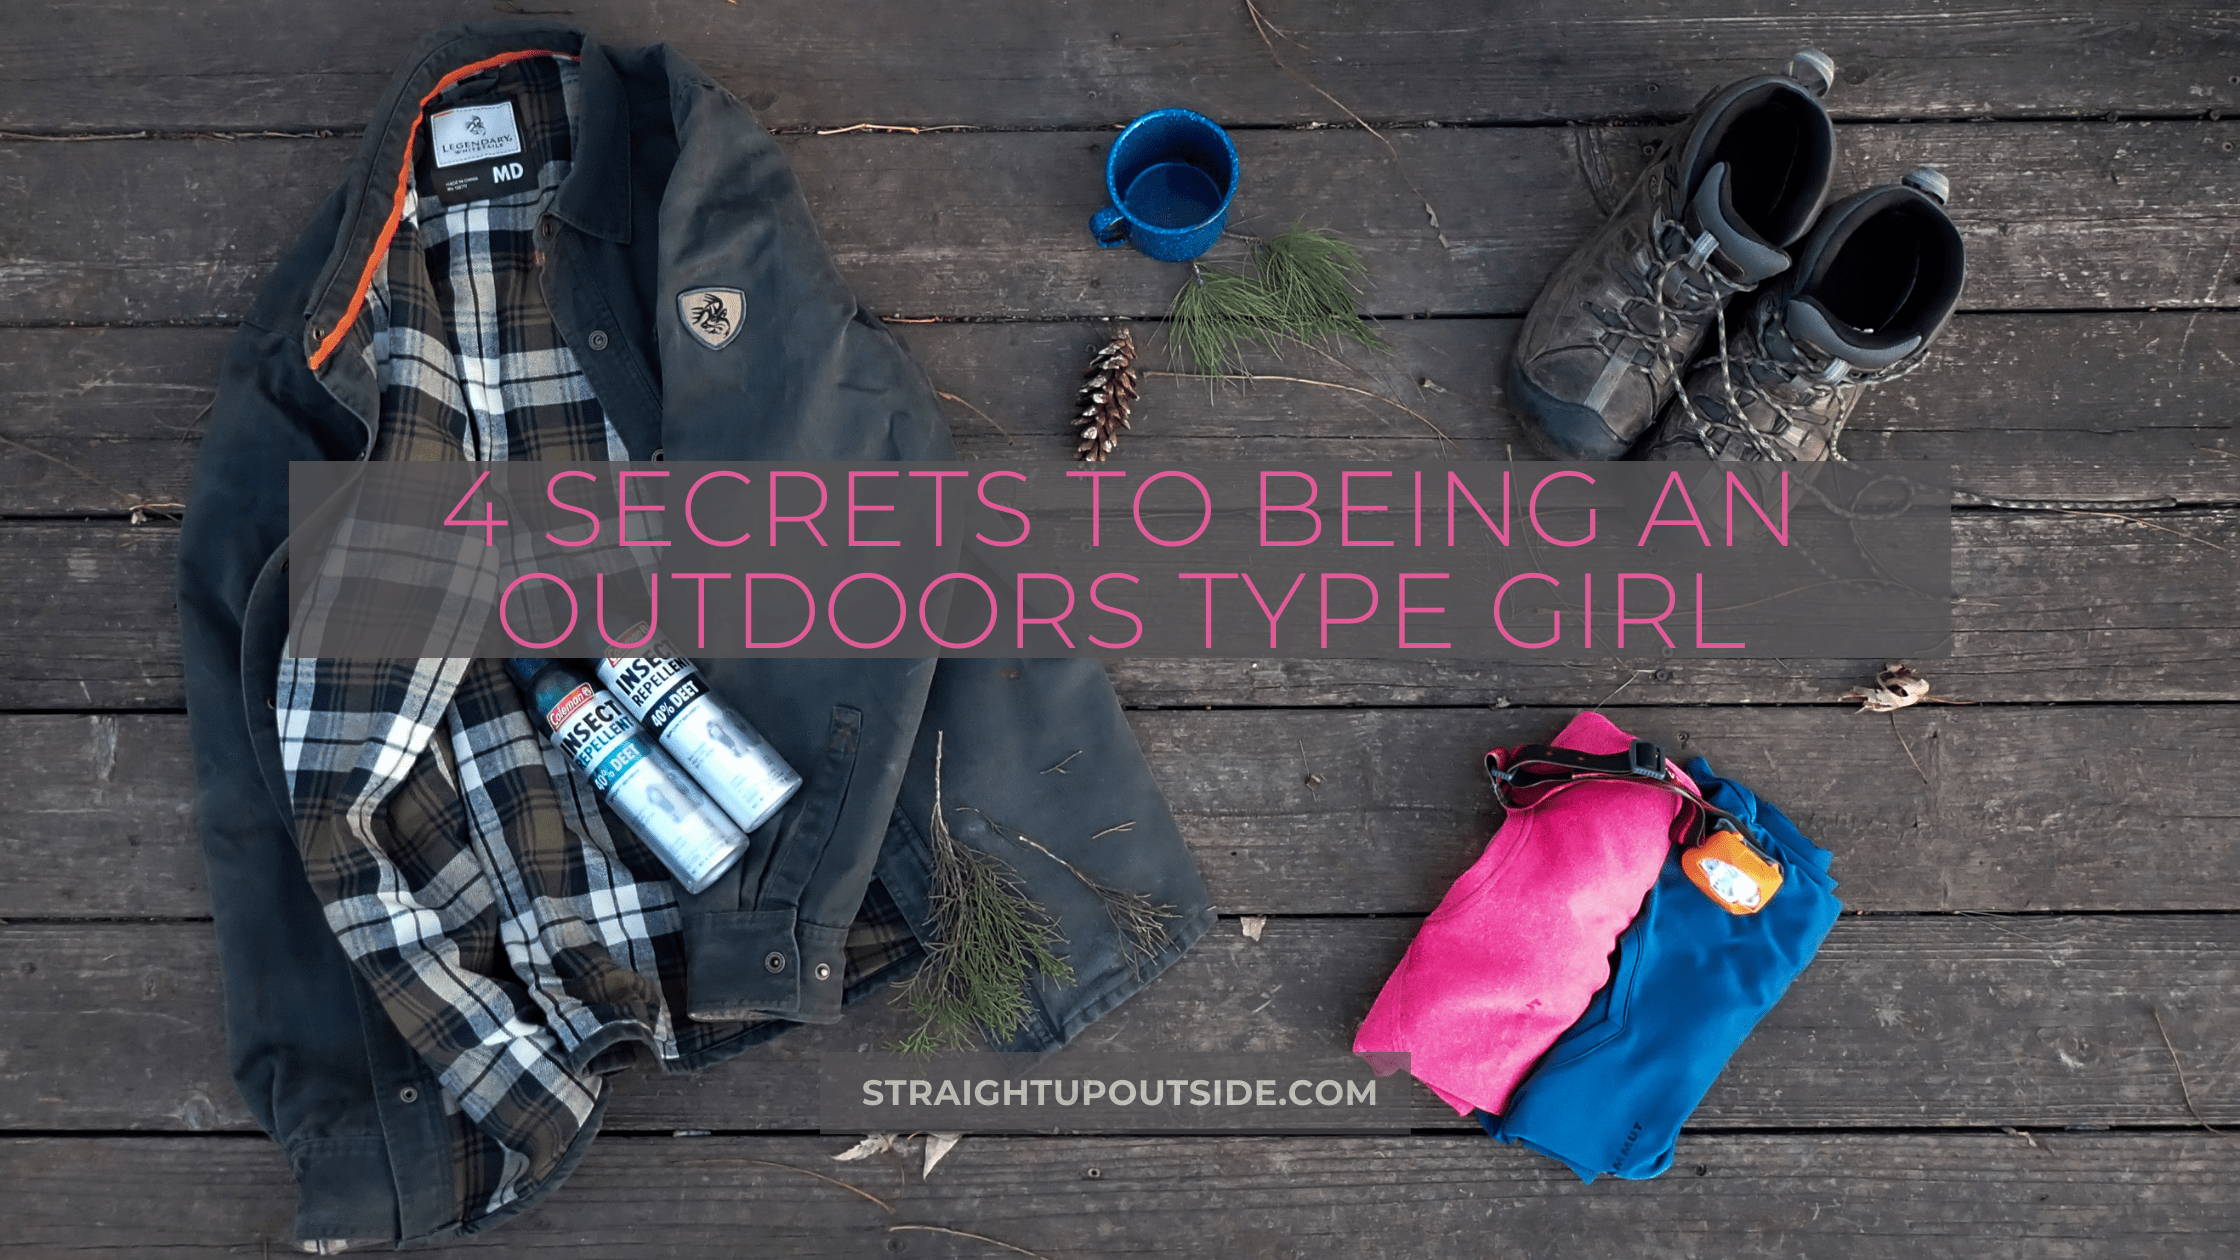 4 Secrets to Being An Outdoors Type Girl